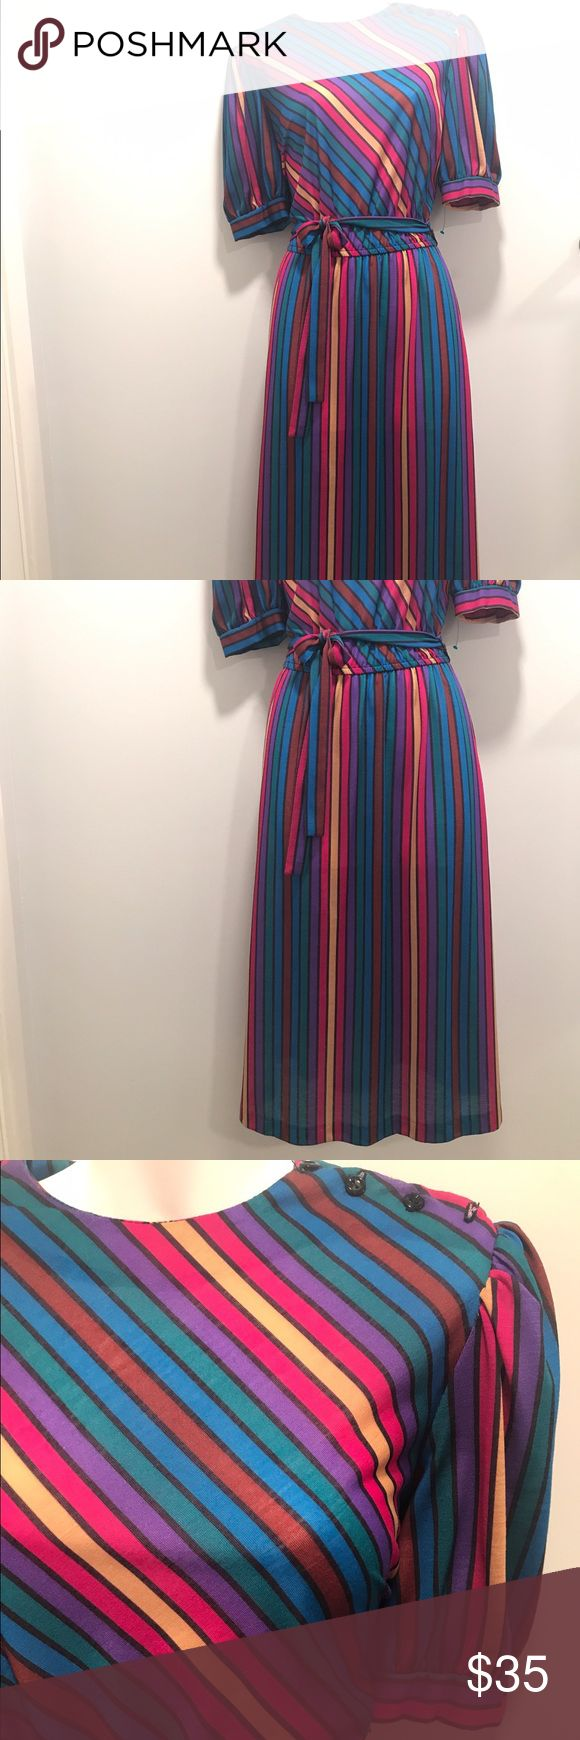 Retro multi color dress- size 12 This groovy dress is the perfect rainbow piece to your wardrobe. All original buttons are still attached along with the matching belt. Truly timeless. Get it before it's gone! Dresses Midi